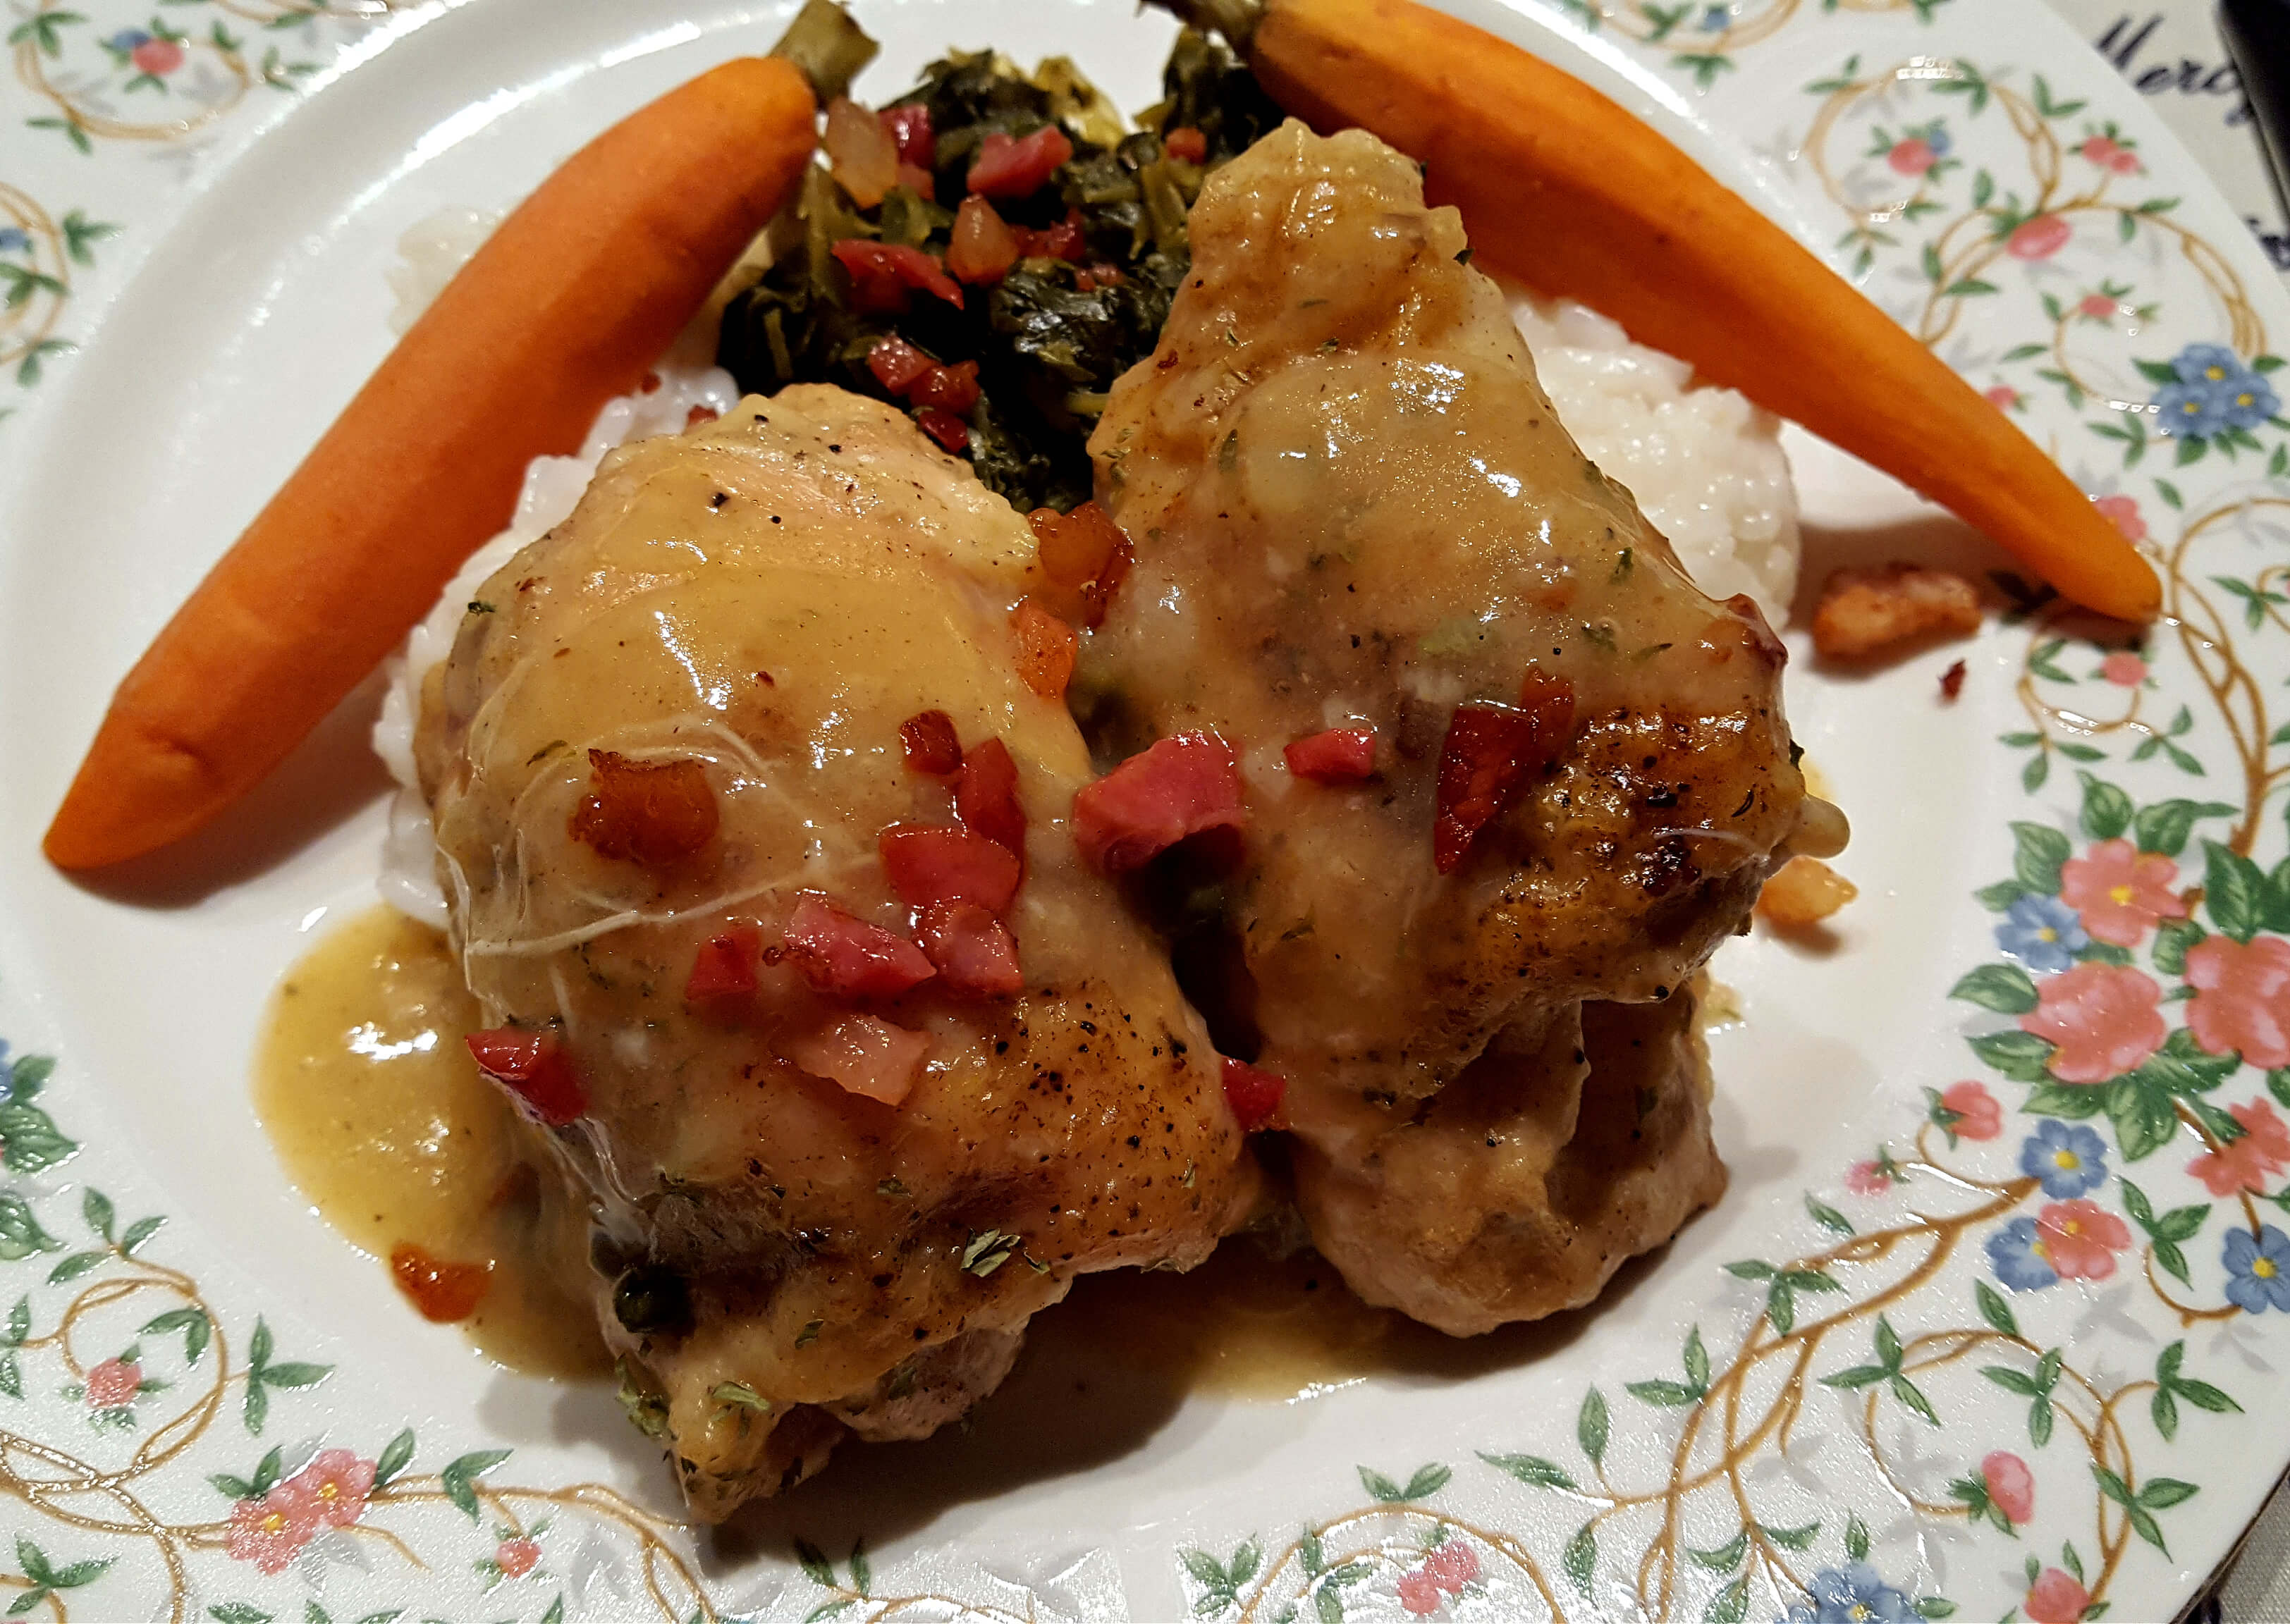 Braised Chicken Thighs on a dinner plate with carrots and greens